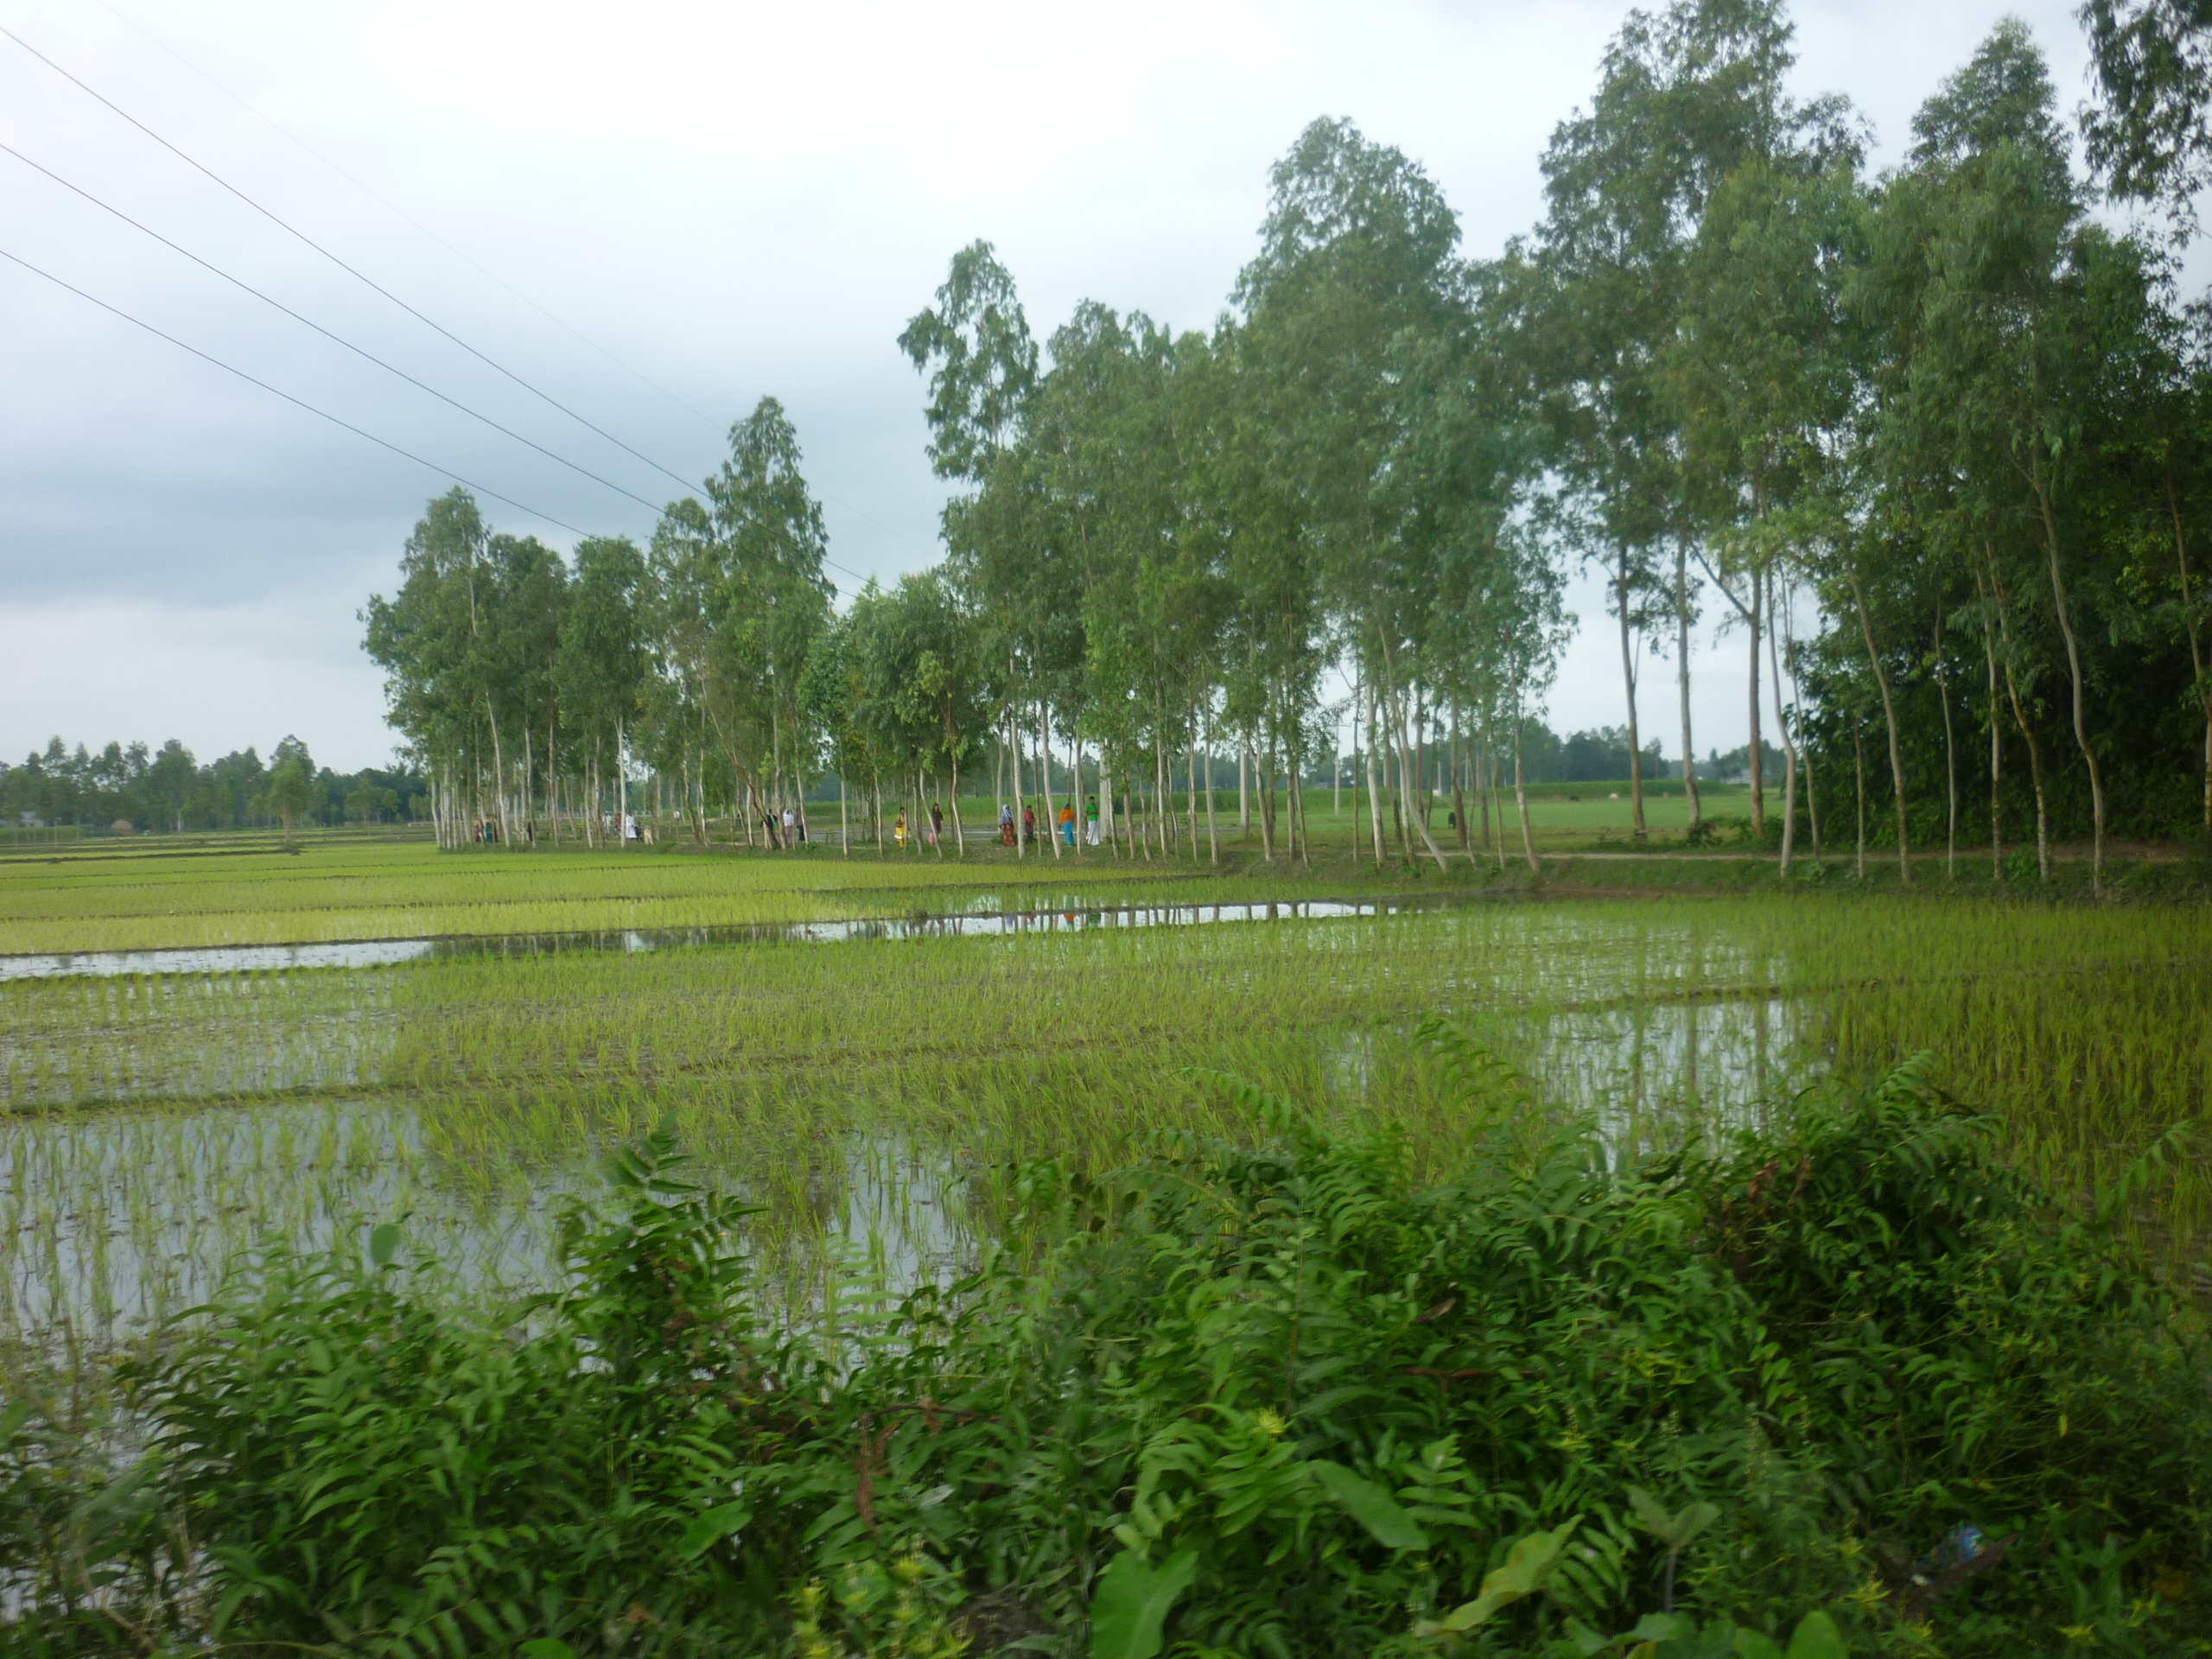 A water-soaked field in Bangladesh, with trees in the background and shrubs in fore-ground.